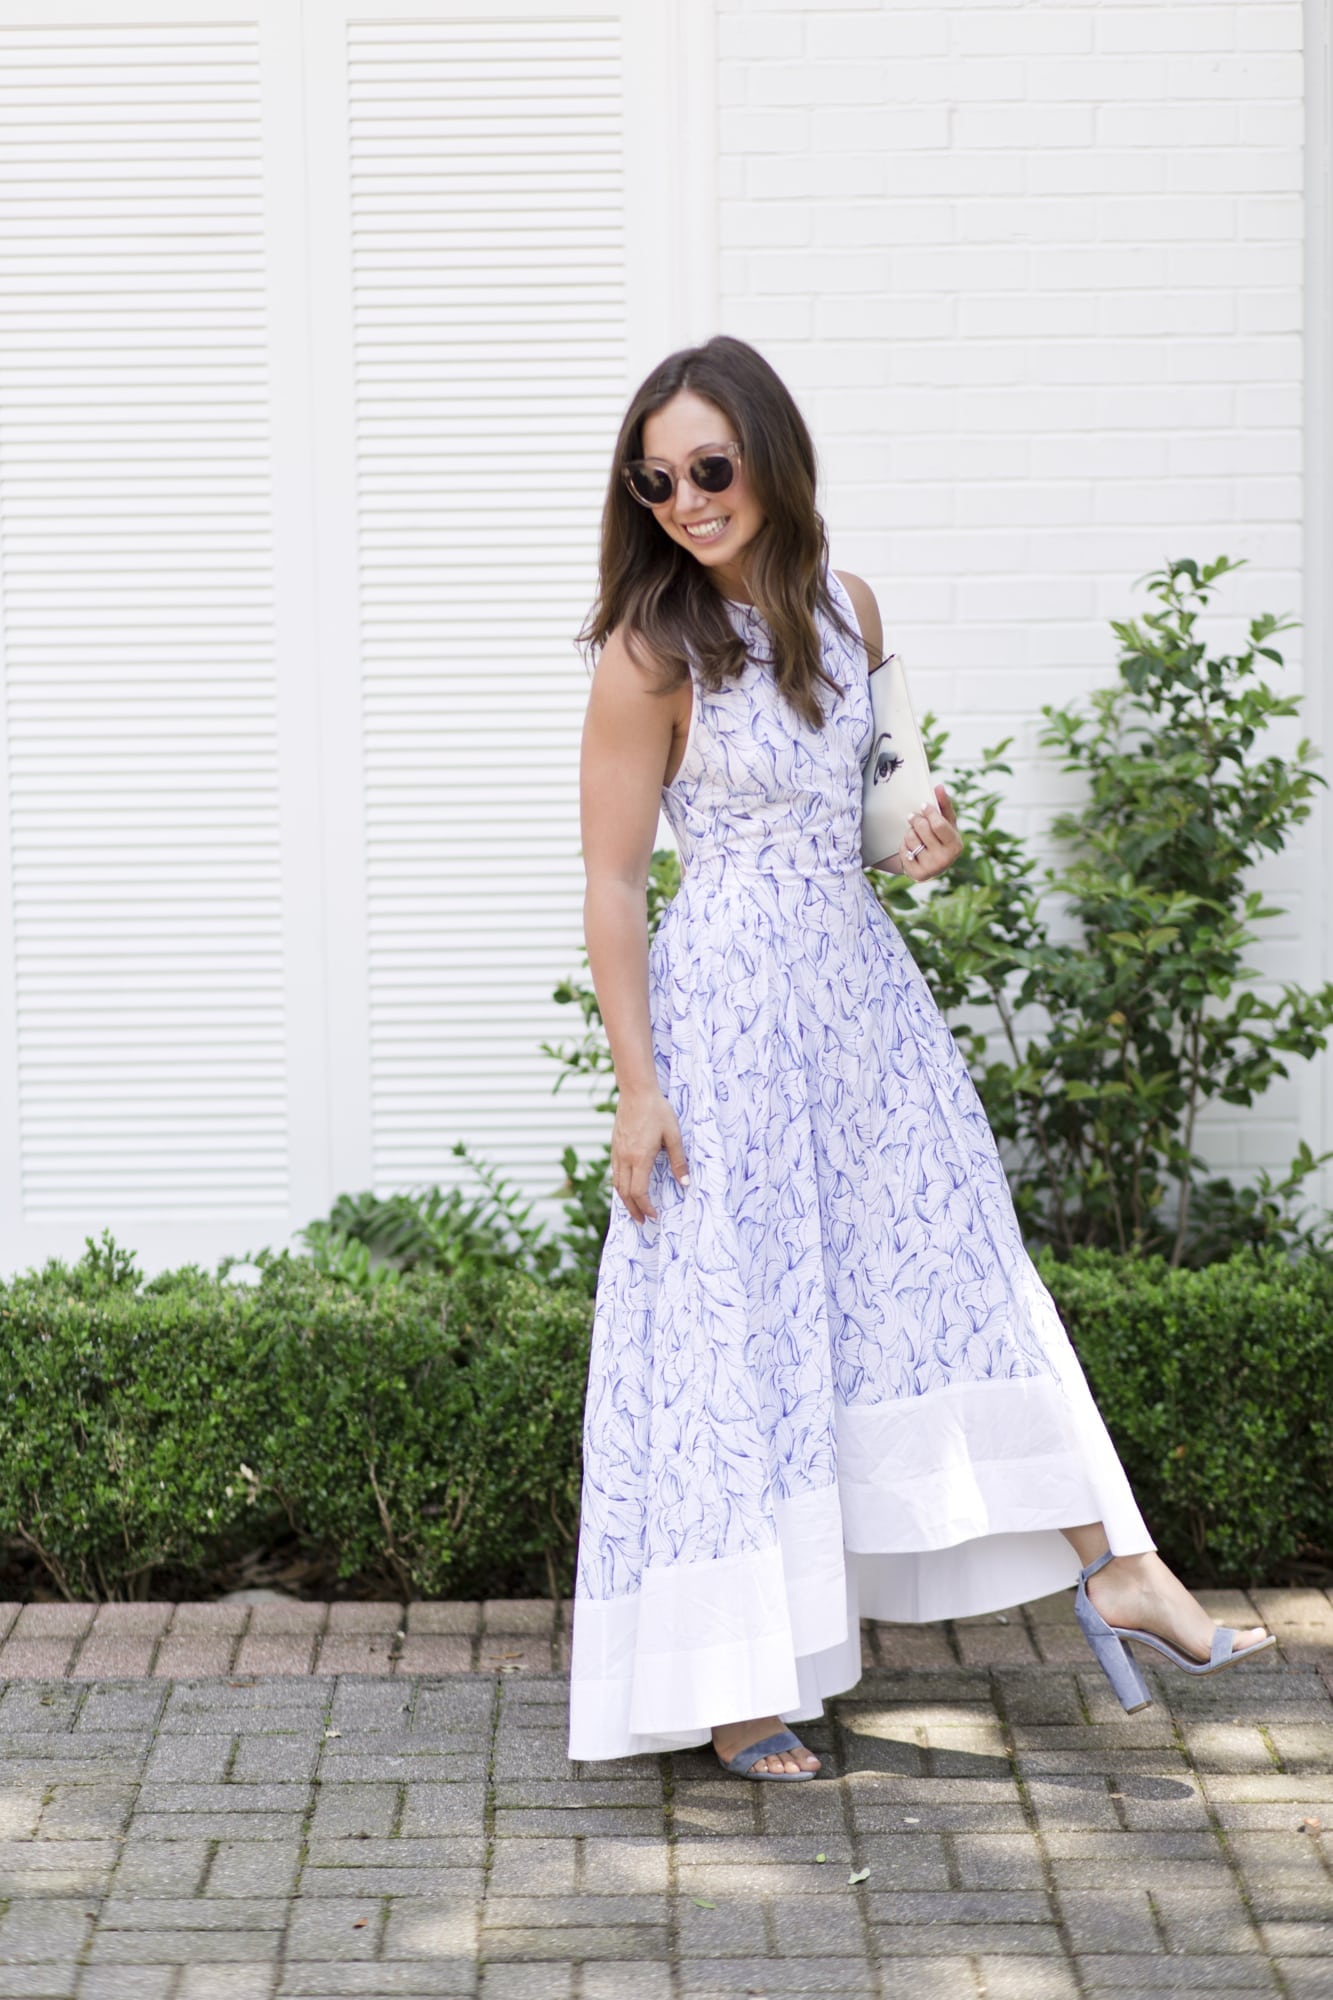 Tory Burch Blue and White Dress with Celine Sunglasses